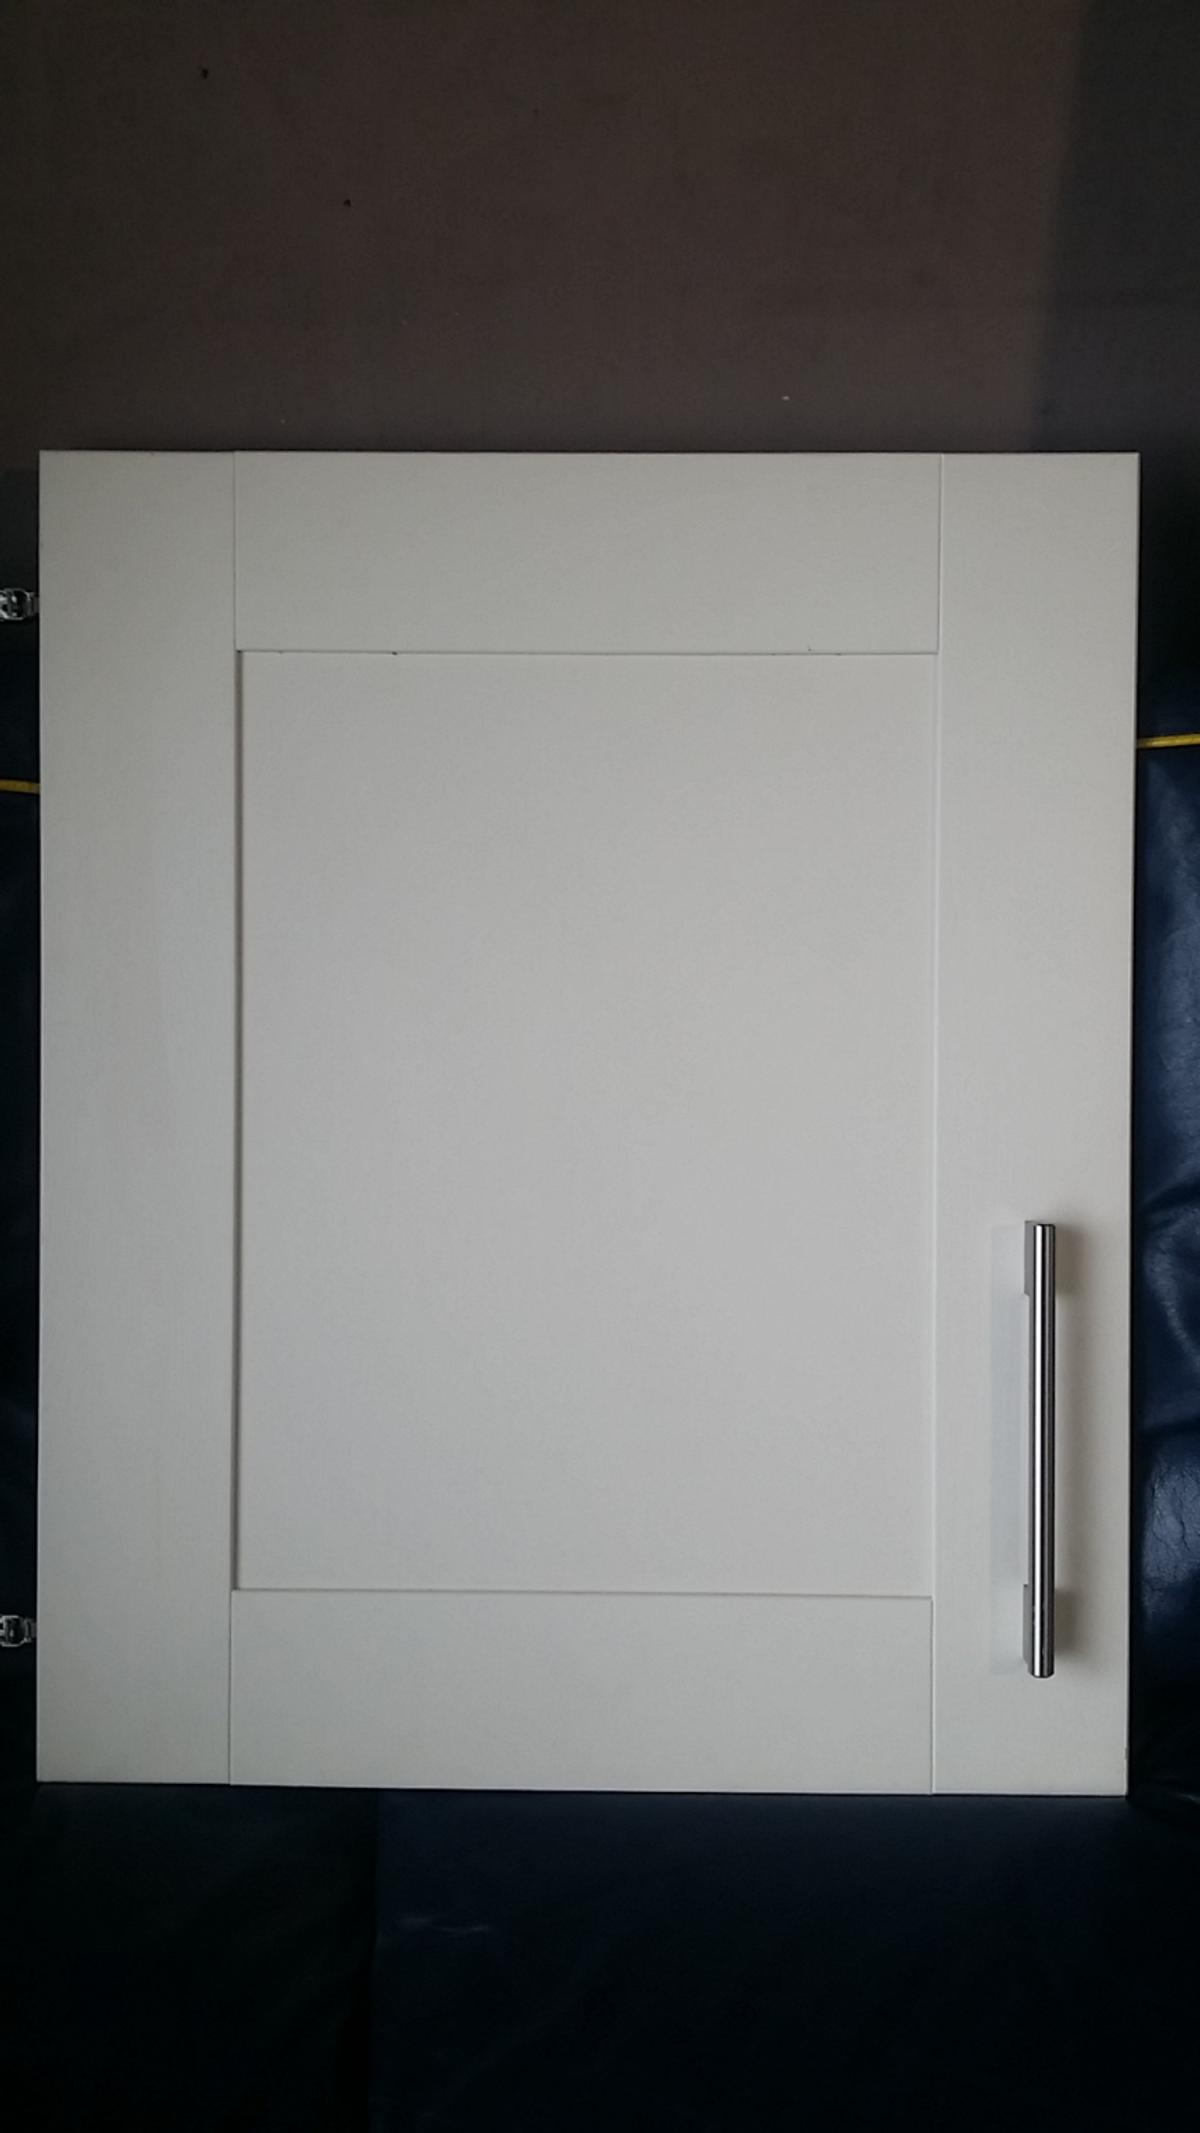 Wickes Tiverton Bone Kitchen Doors In Br6 London For 85 00 For Sale Shpock